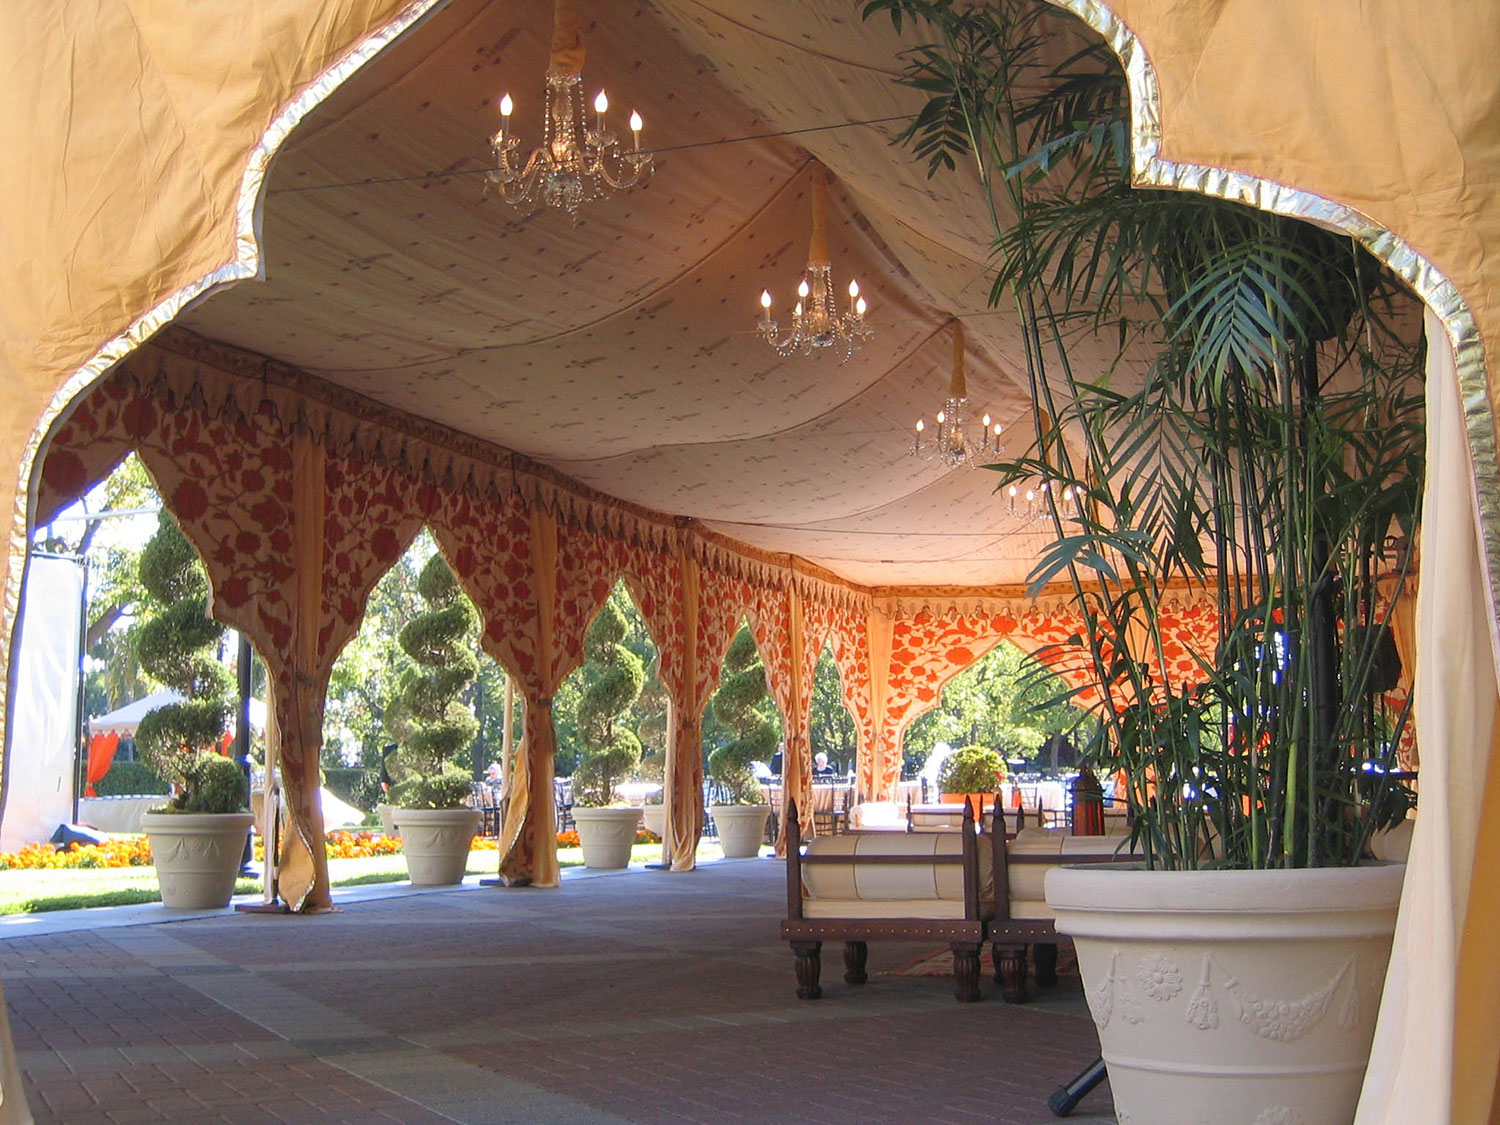 raj-tents-frame-tent-linings-flower-arches.jpg